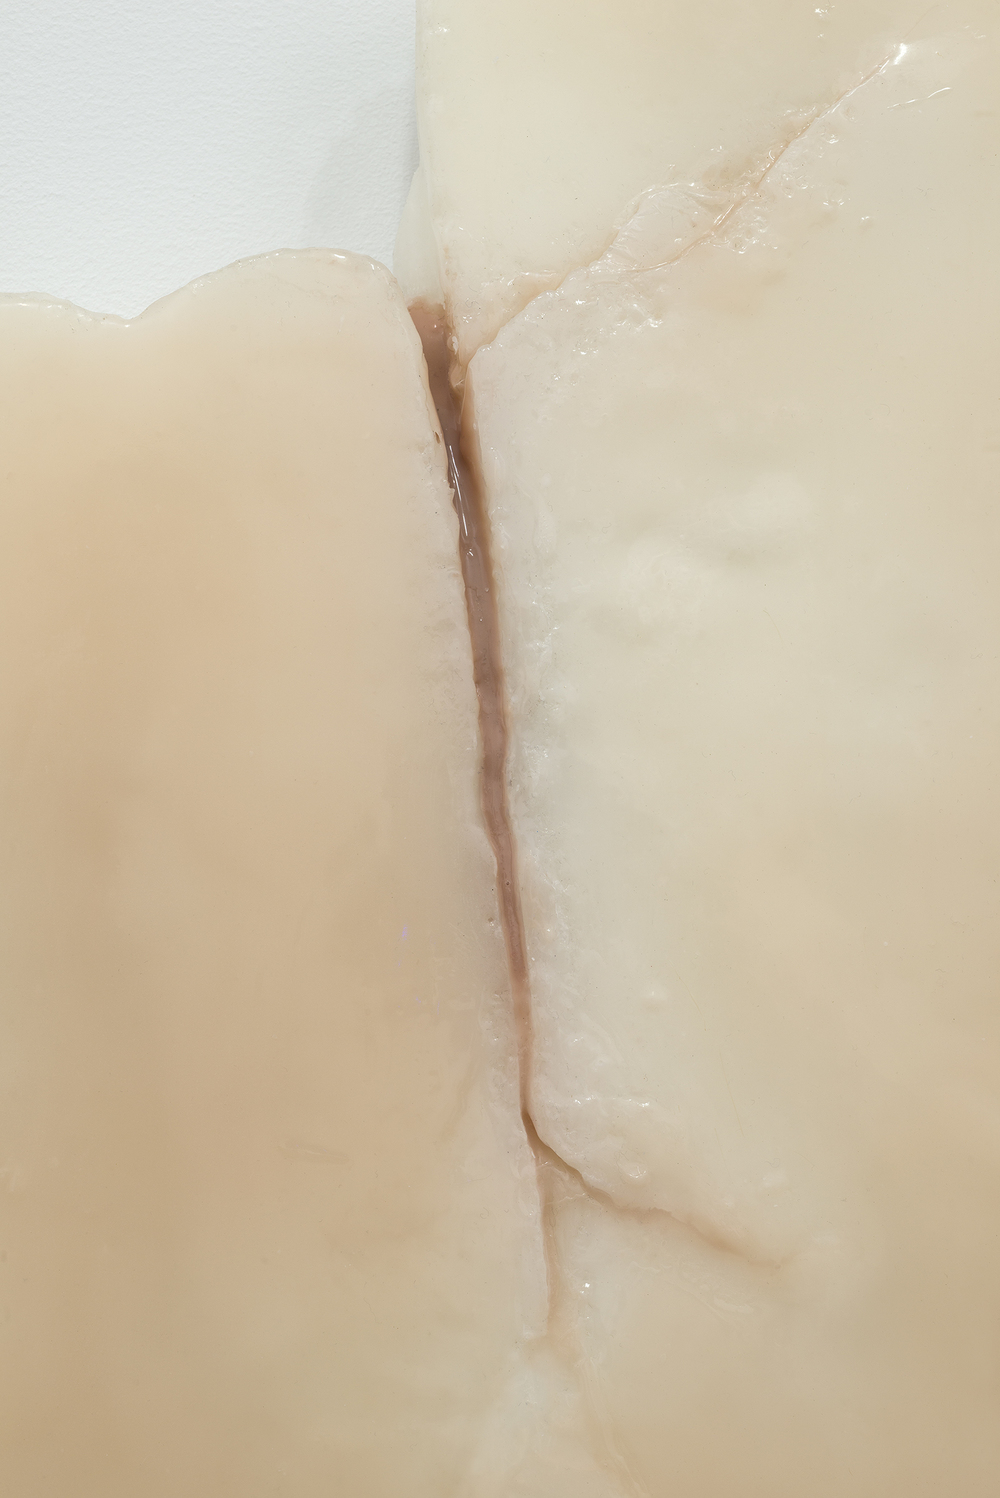 Ivana Basic,  Ungrounding  (detail), 2014, wax, silicon, linoleum, 19.5 x 13 x 2.5 in